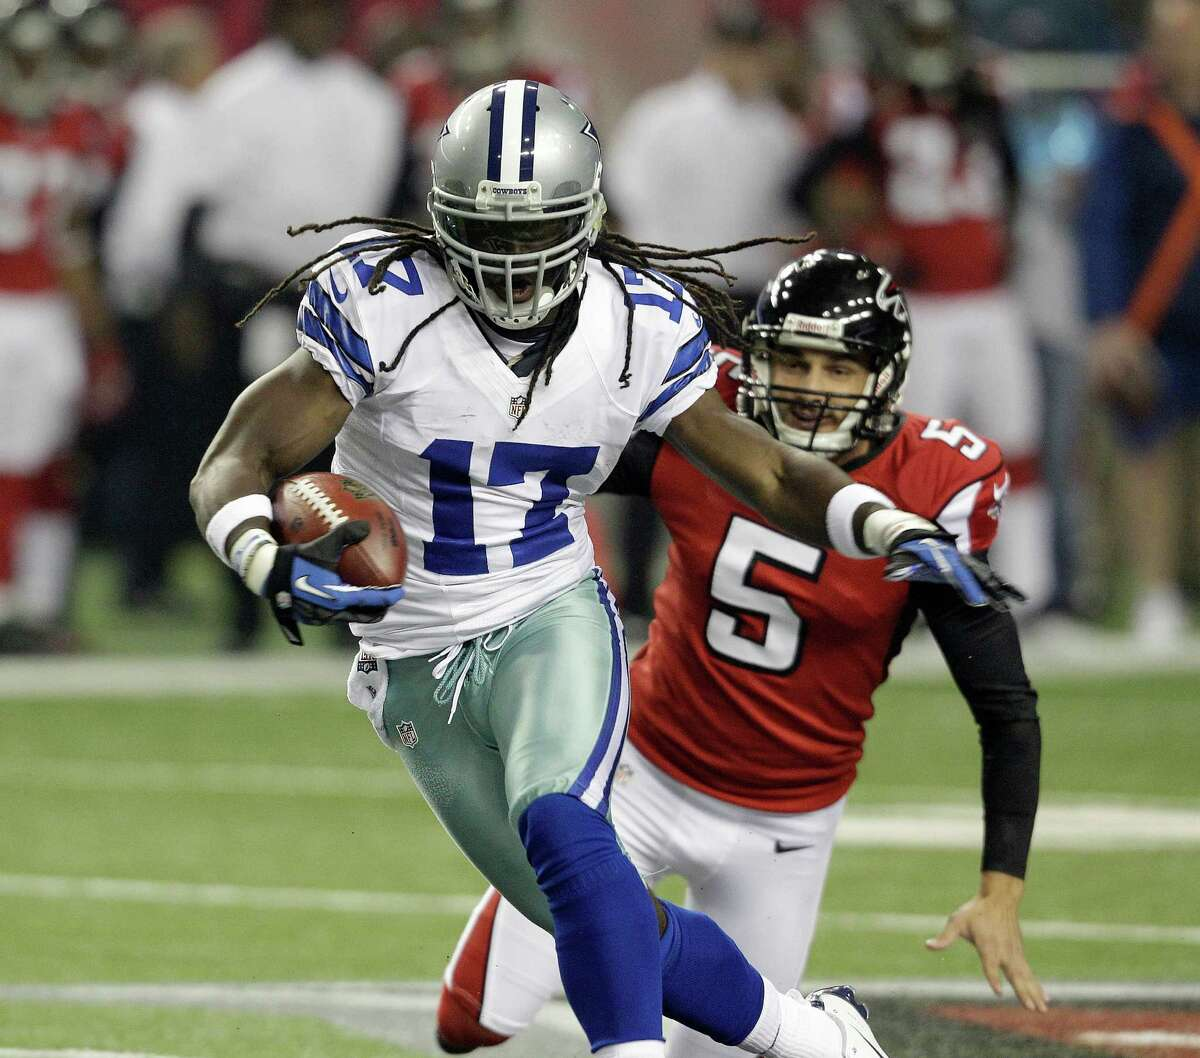 Dallas Cowboys wide receiver Dwayne Harris (17) breaks away from Atlanta Falcons punter Matt Bosher (5) as he returns a punt during the first half of an NFL football game Sunday, Nov. 4, 2012, in Atlanta. (AP Photo/Chuck Burton)